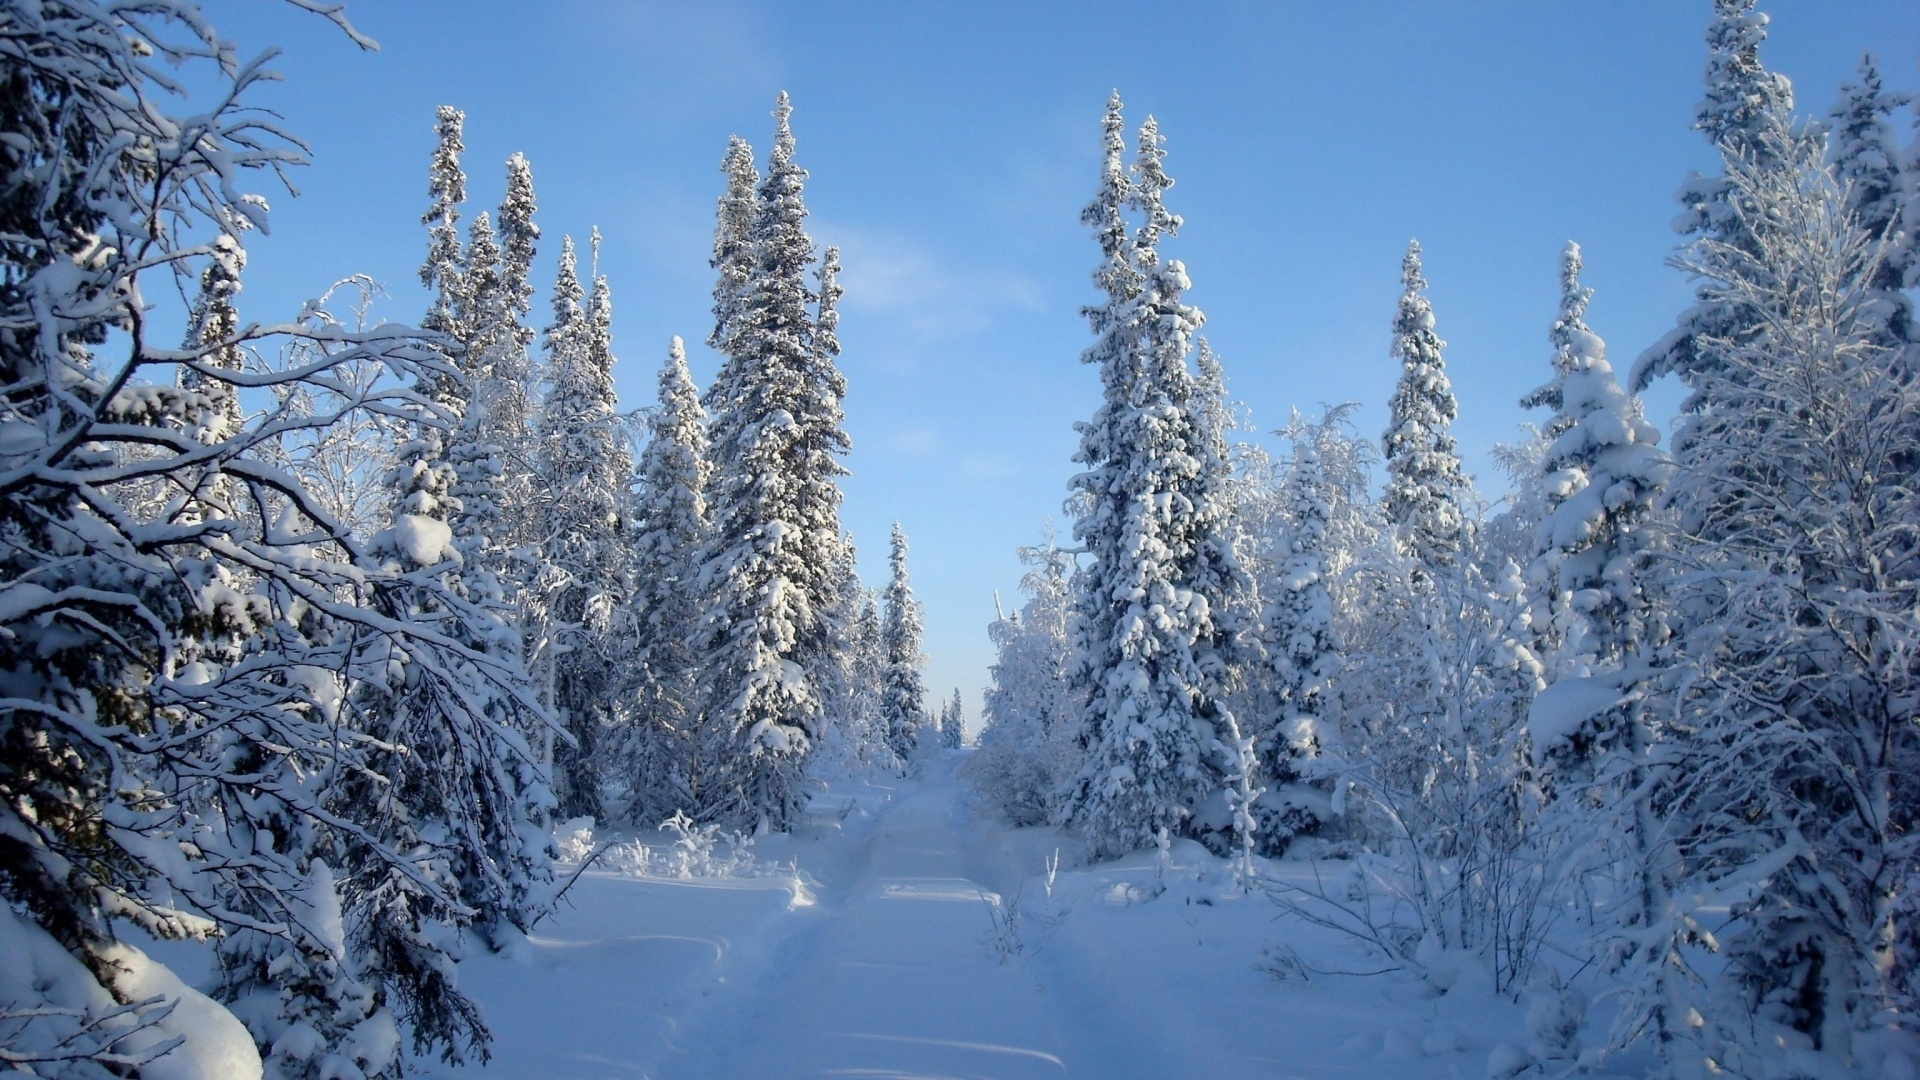 Snow Forest Image